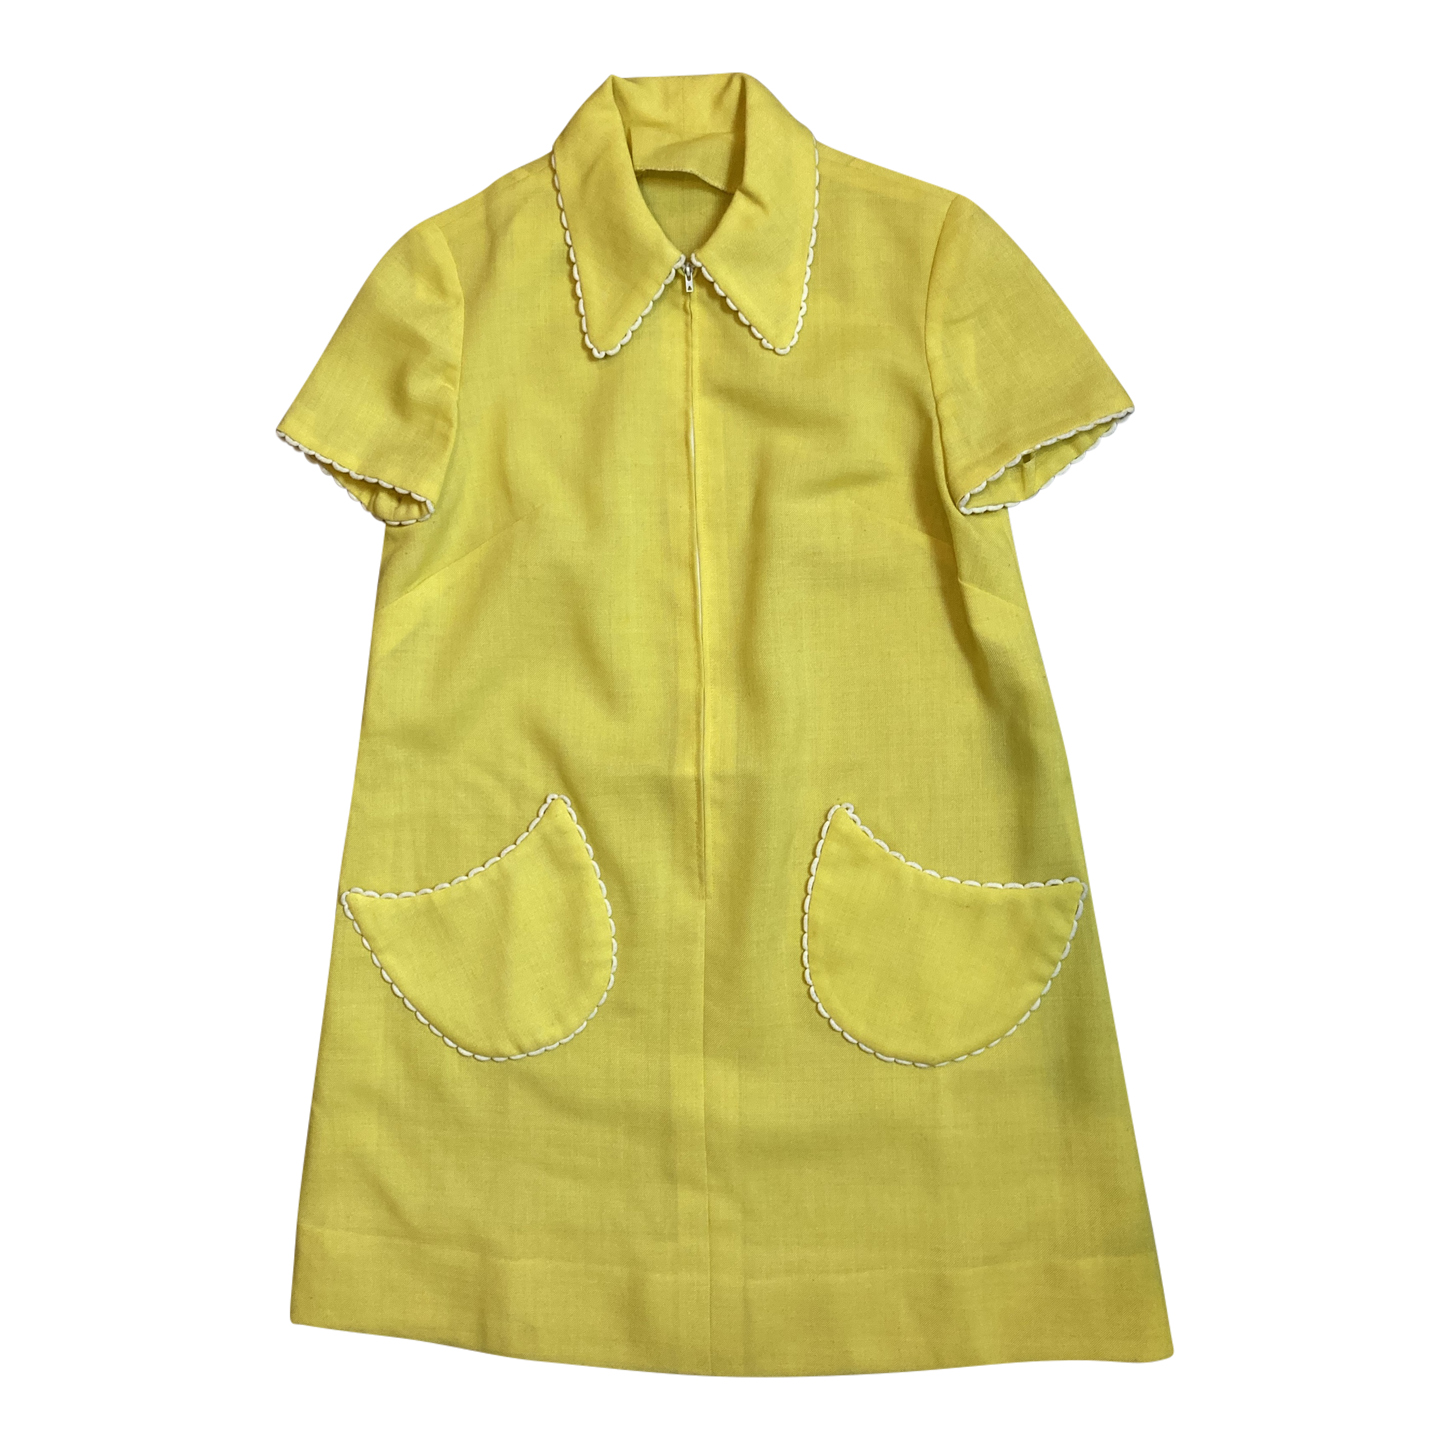 Mini robe jaune 60's